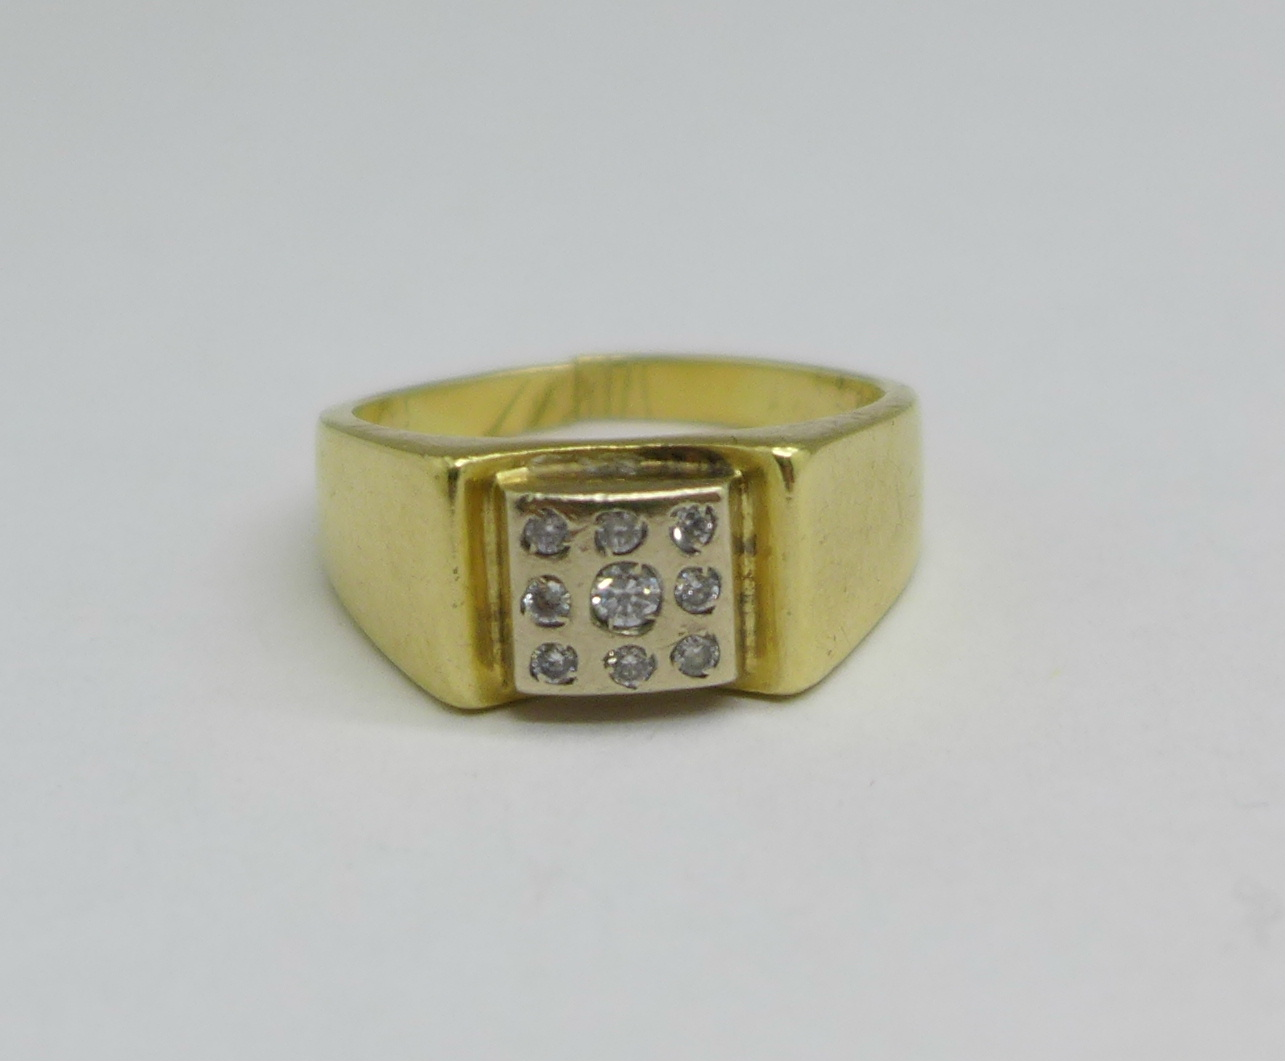 A 14ct gold and white stone ring, 7.9g, shank a/f